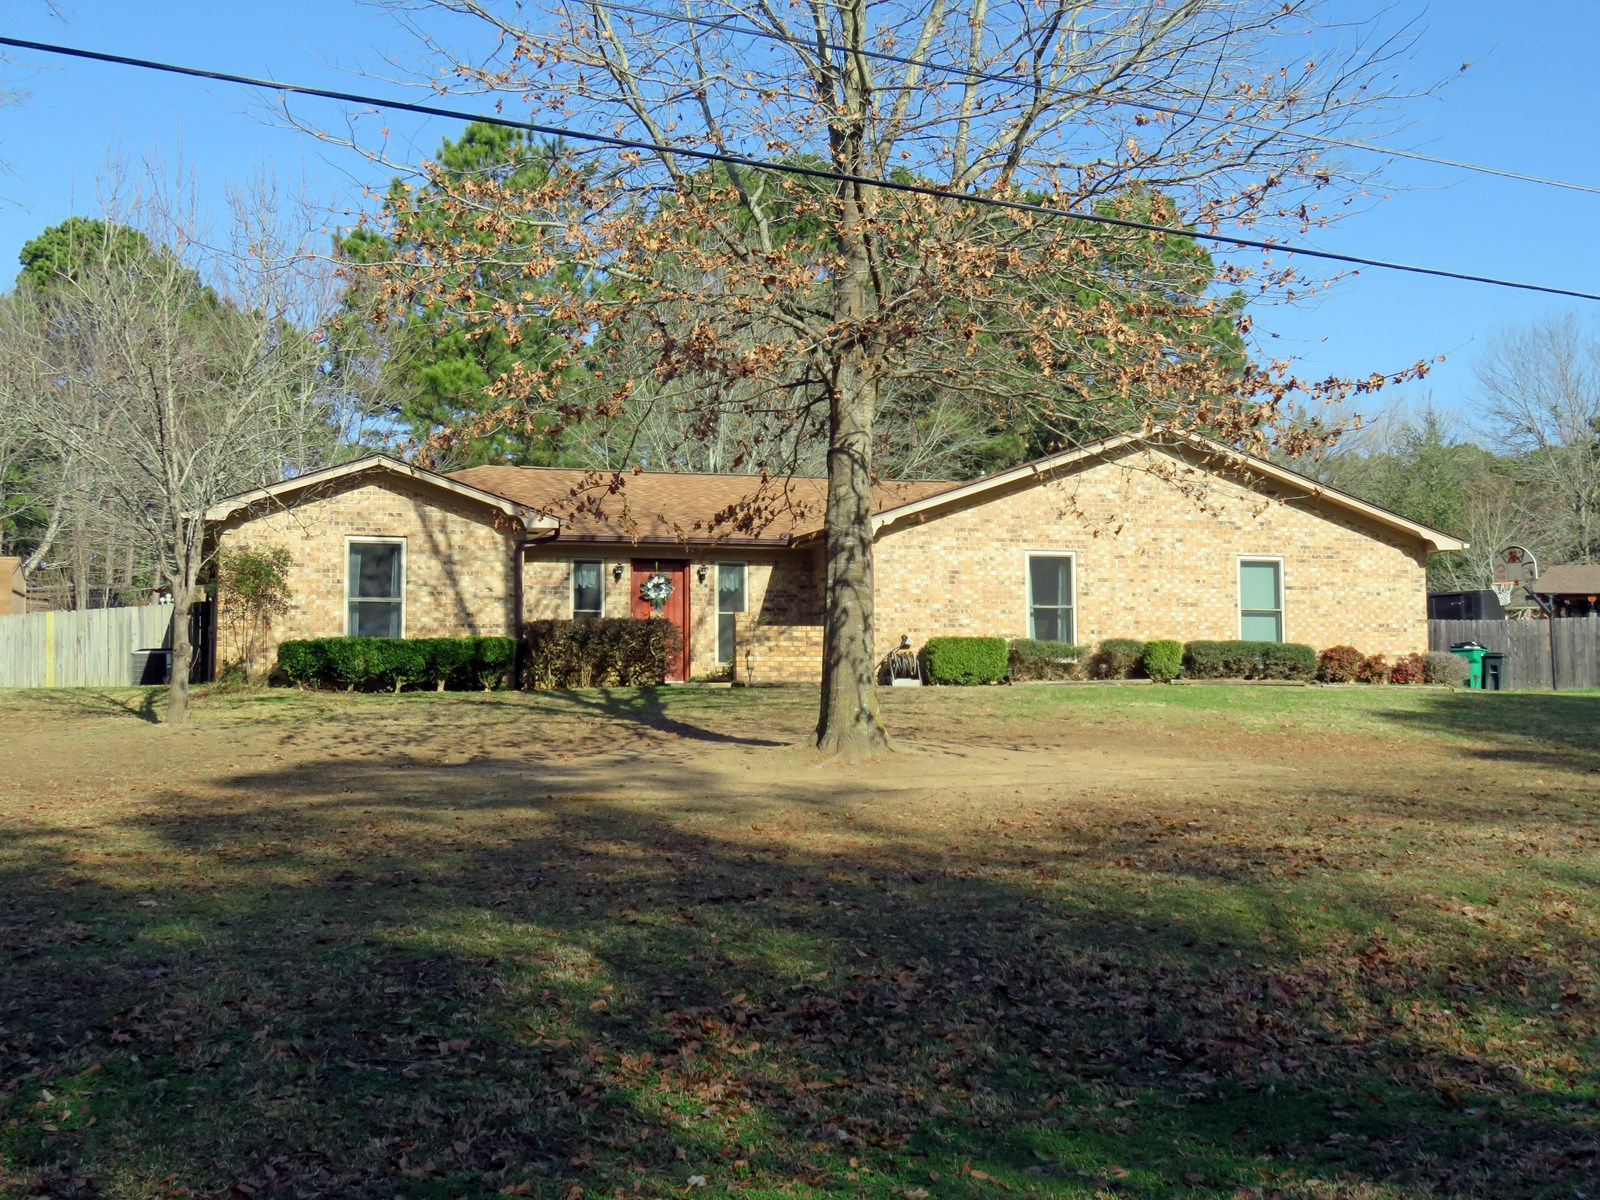 3/2 HOME FOR SALE IN ANDERSON COUNTY